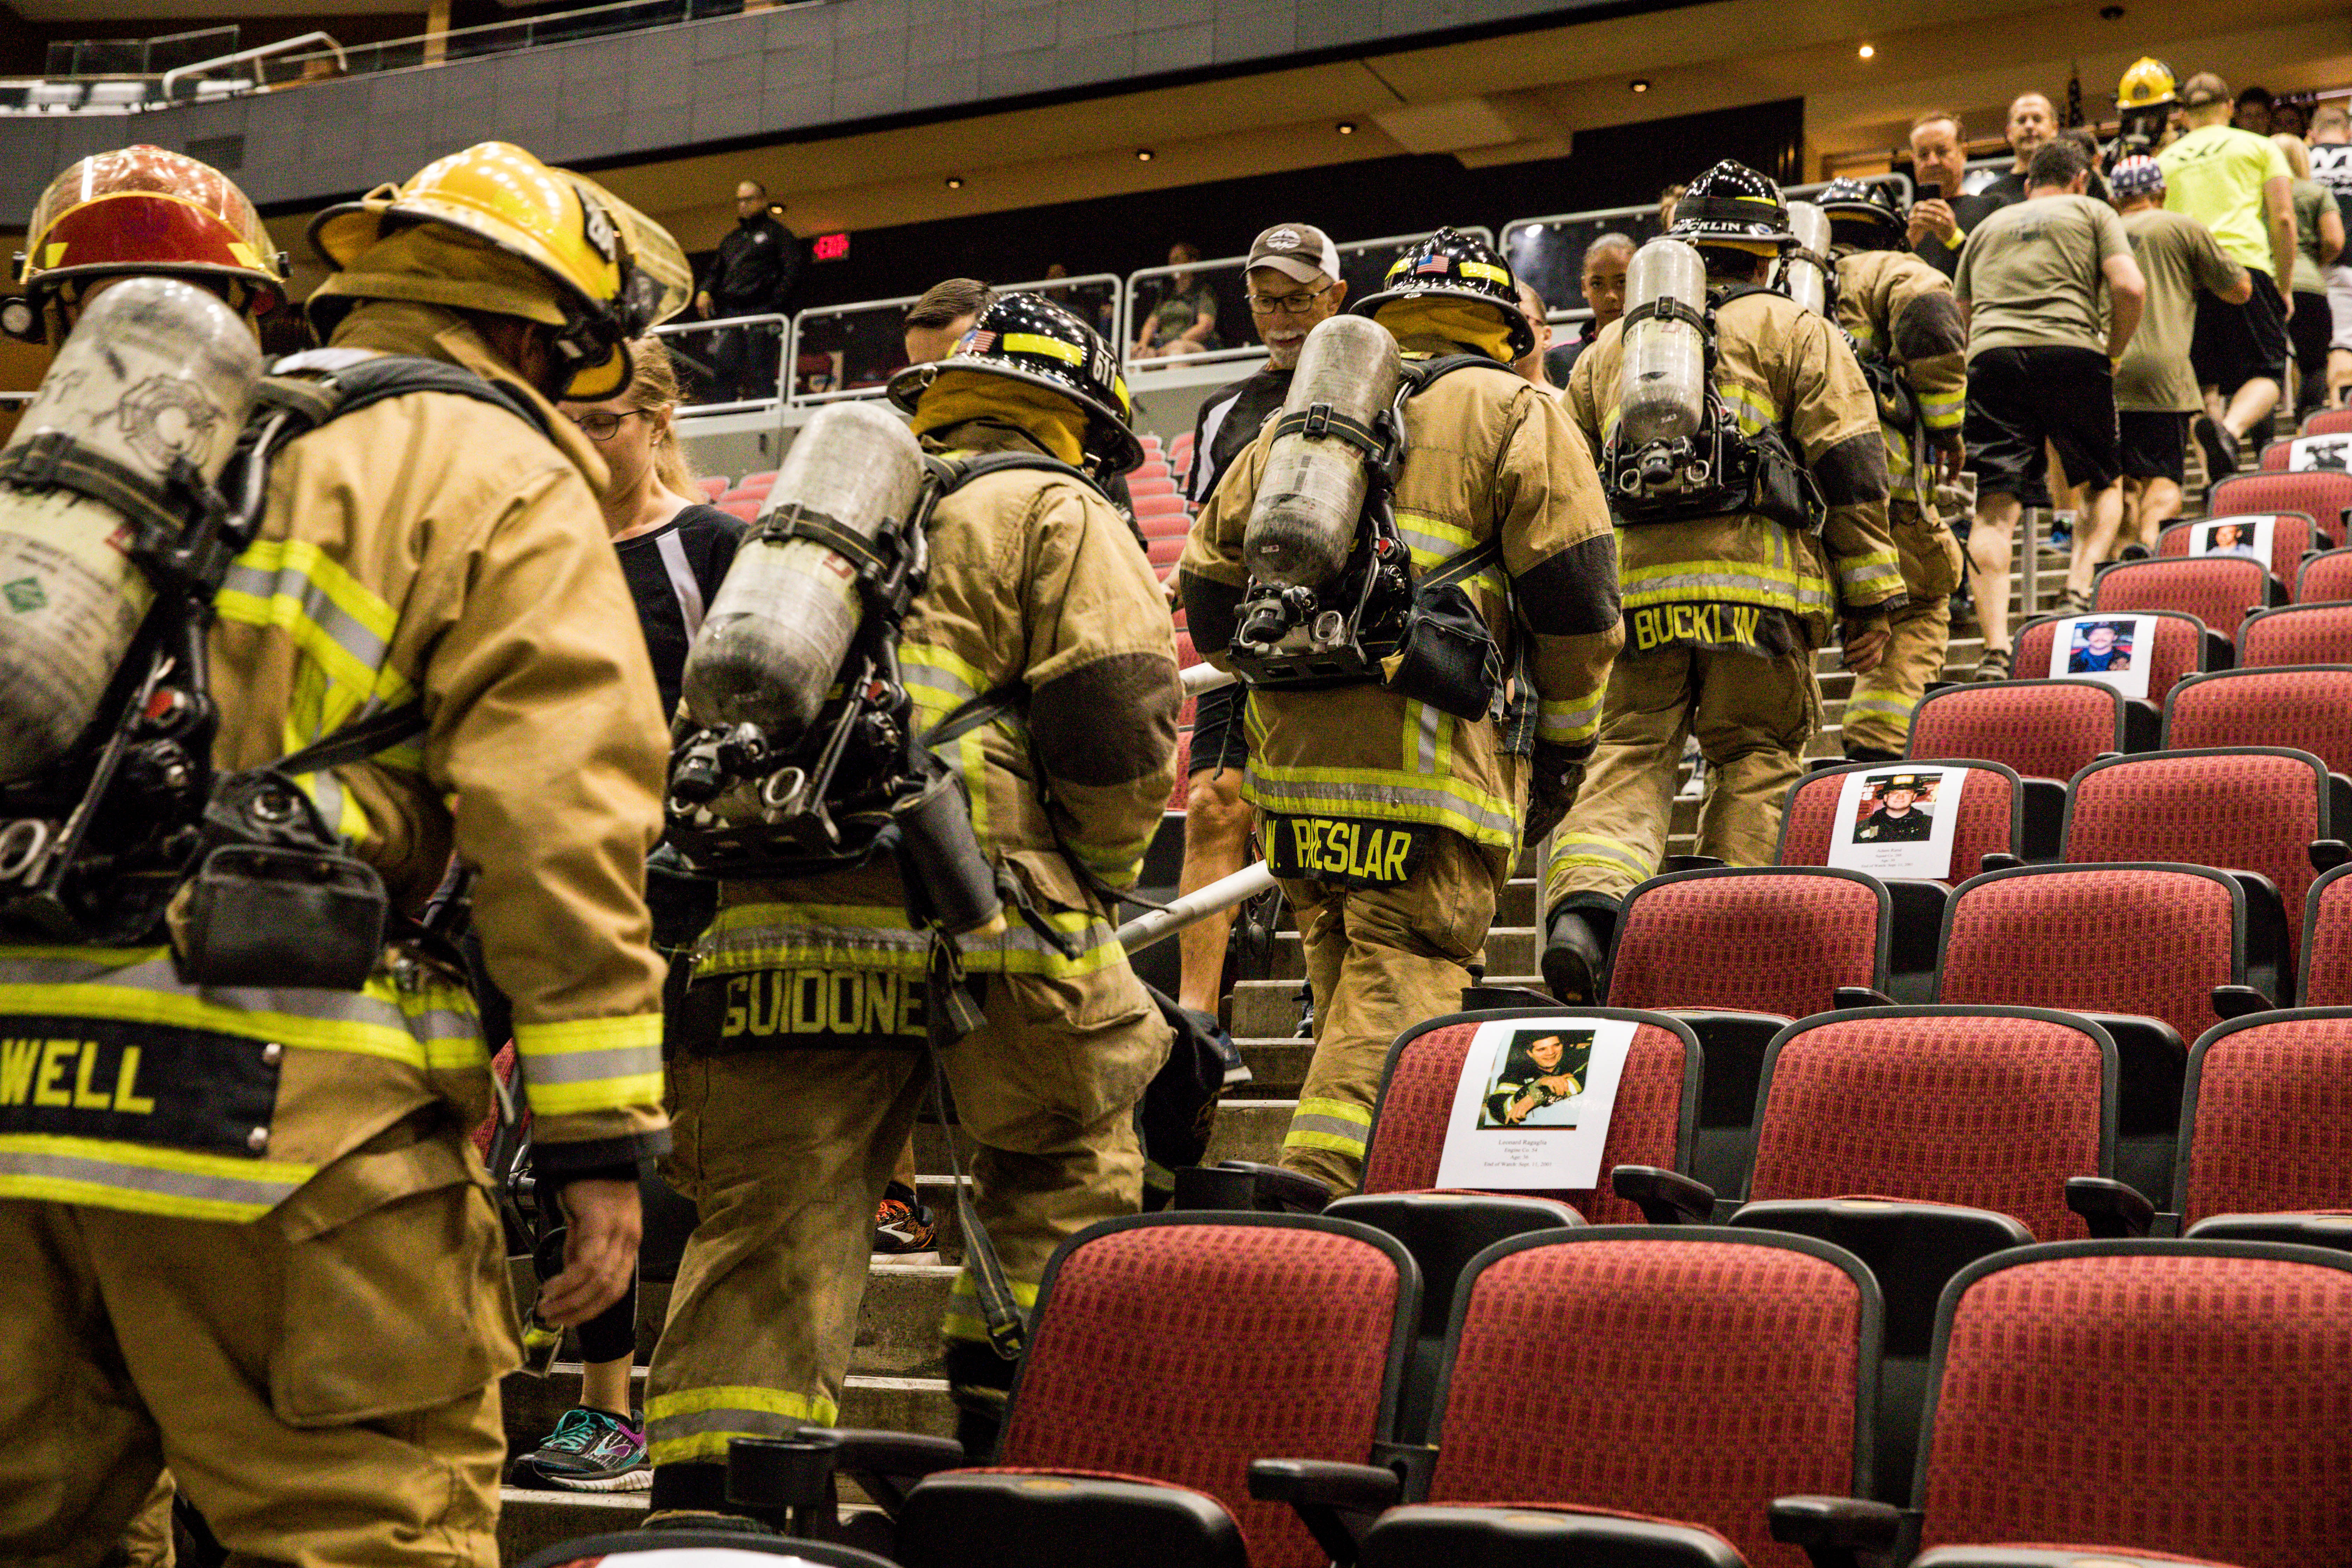 Firemen in full uniform and gear walk up stairs in line aribella photography event pictures